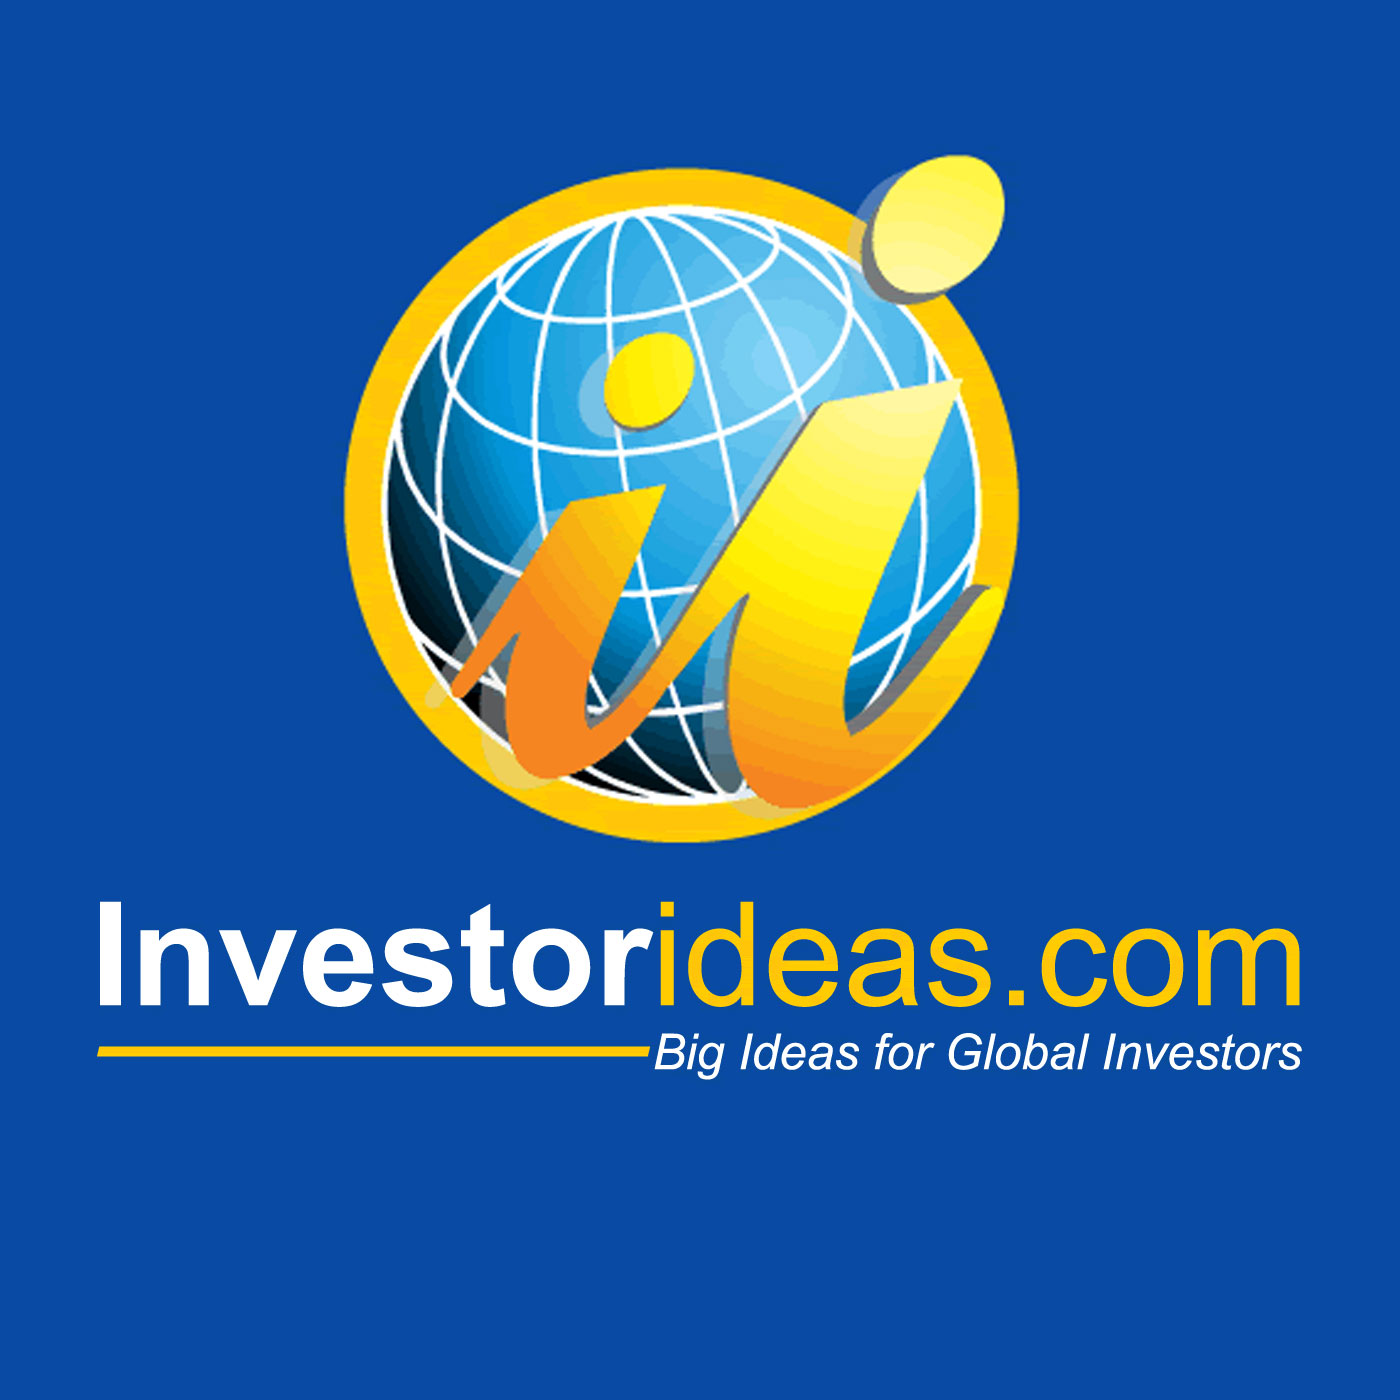 Investor Ideas Potcasts #548, Cannabis News and Stocks on the Move; (CSE: CURA) (OTCQX: CURLF), (CSE: HOLL) (OTC: HSTRF), (CSE: MEDI) and BDSA